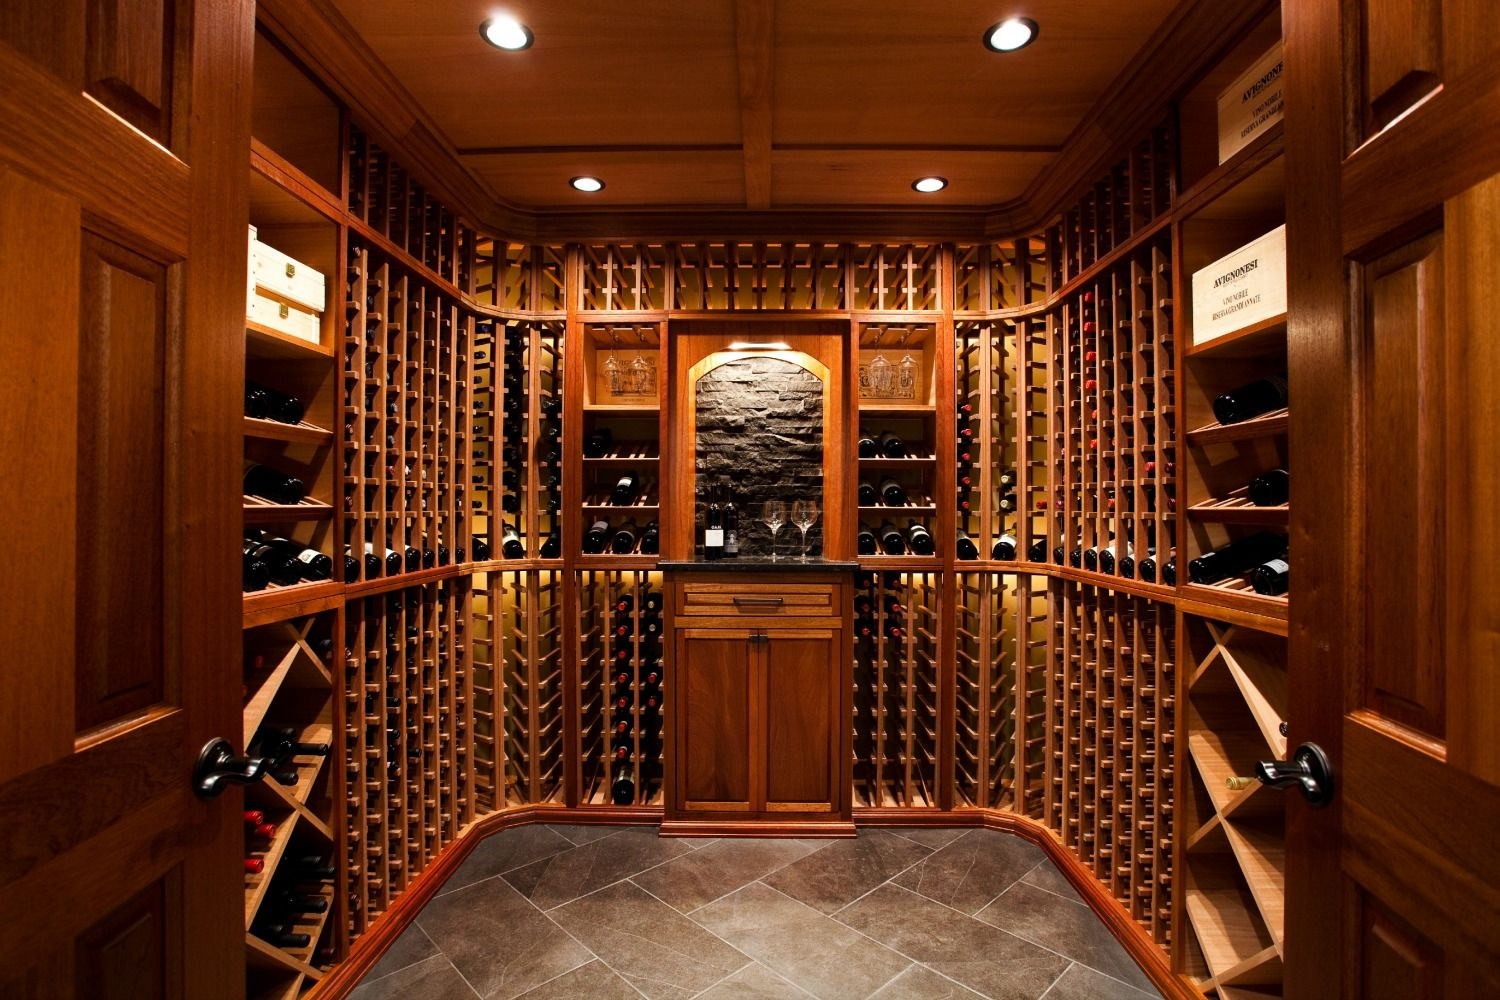 Wine Cellar Decorating Ideas Wine Room Ideas Pictures .for The Room To Be Framed Out At